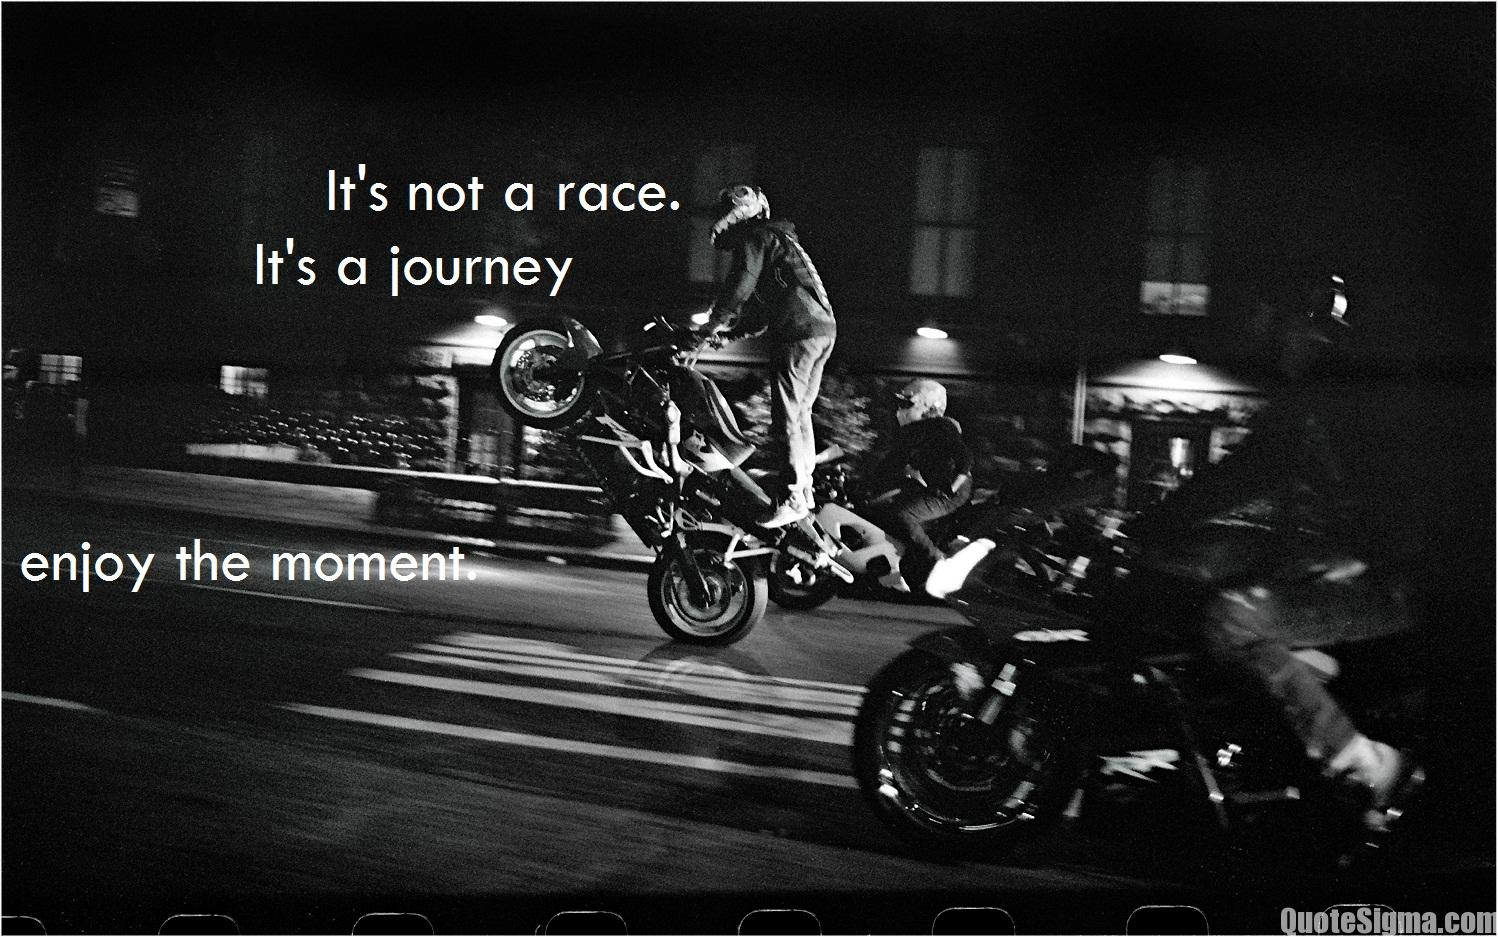 The Sharpest Rides >> Best Bike love quotes | Quotes on Bike rides | Bike race quotes | - Quote Sigma